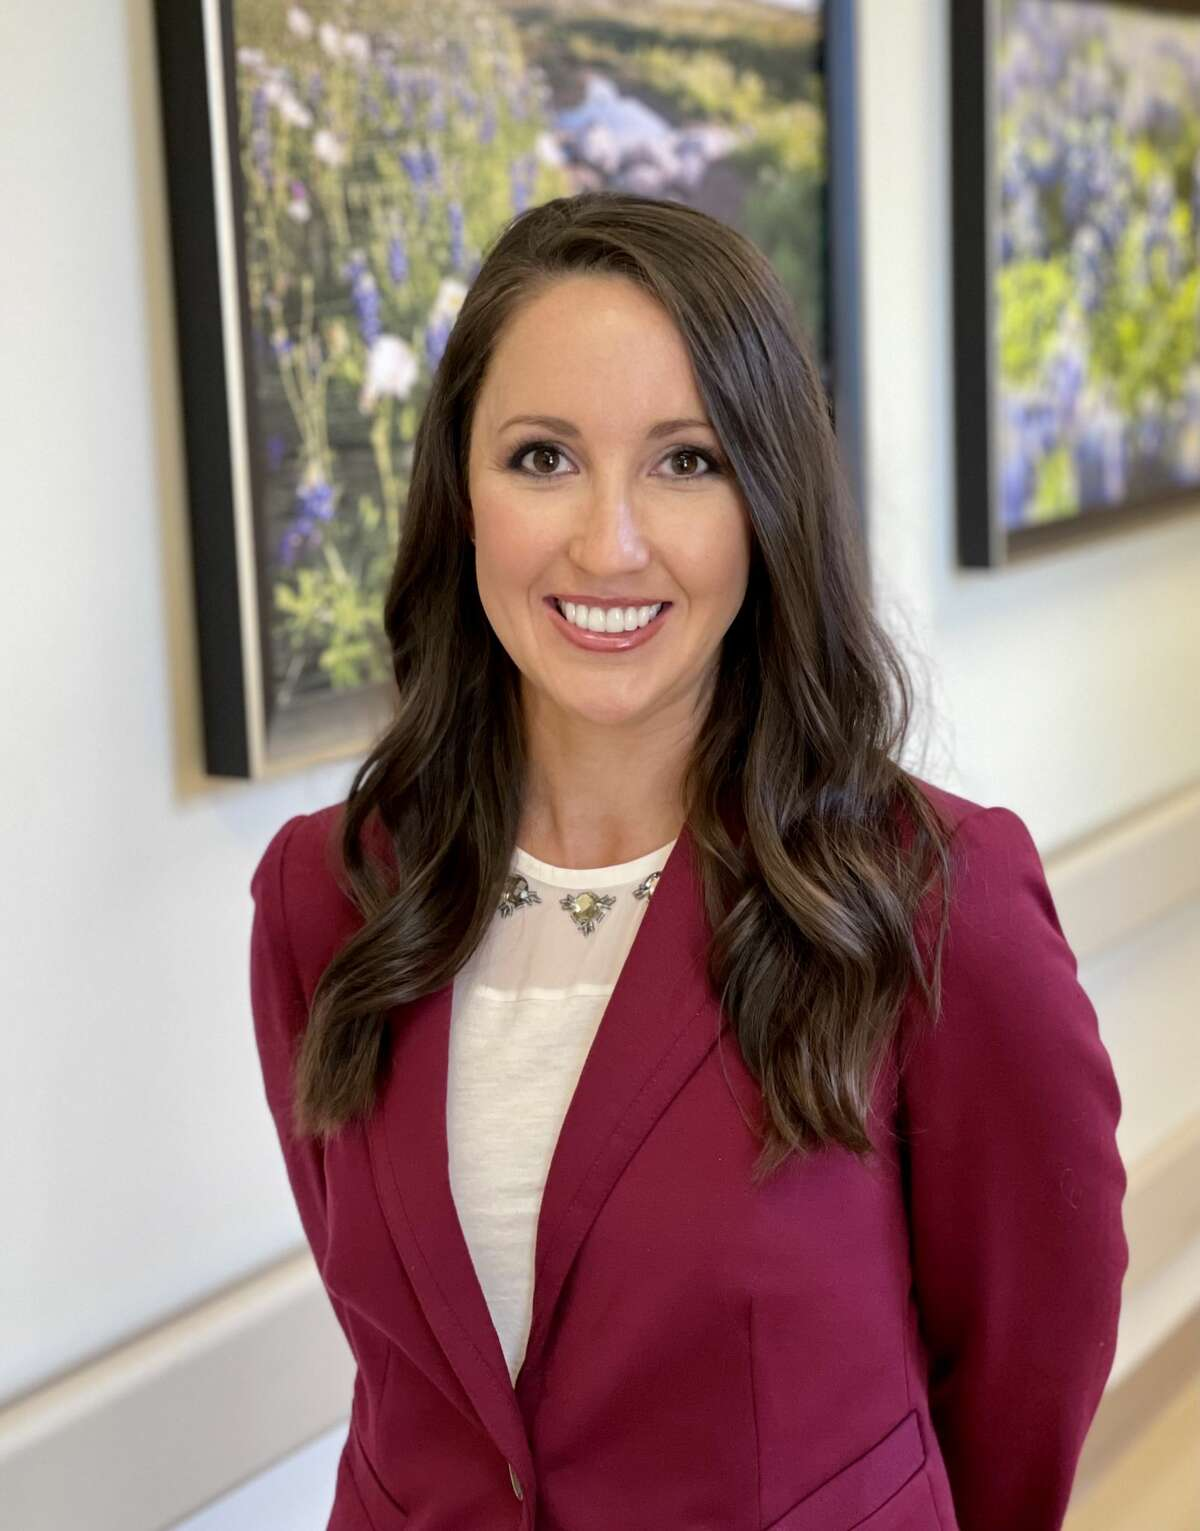 Trustpoint Rehabilitation Hospital of Lubbock has named April Hosley its new Chief Executive Officer.